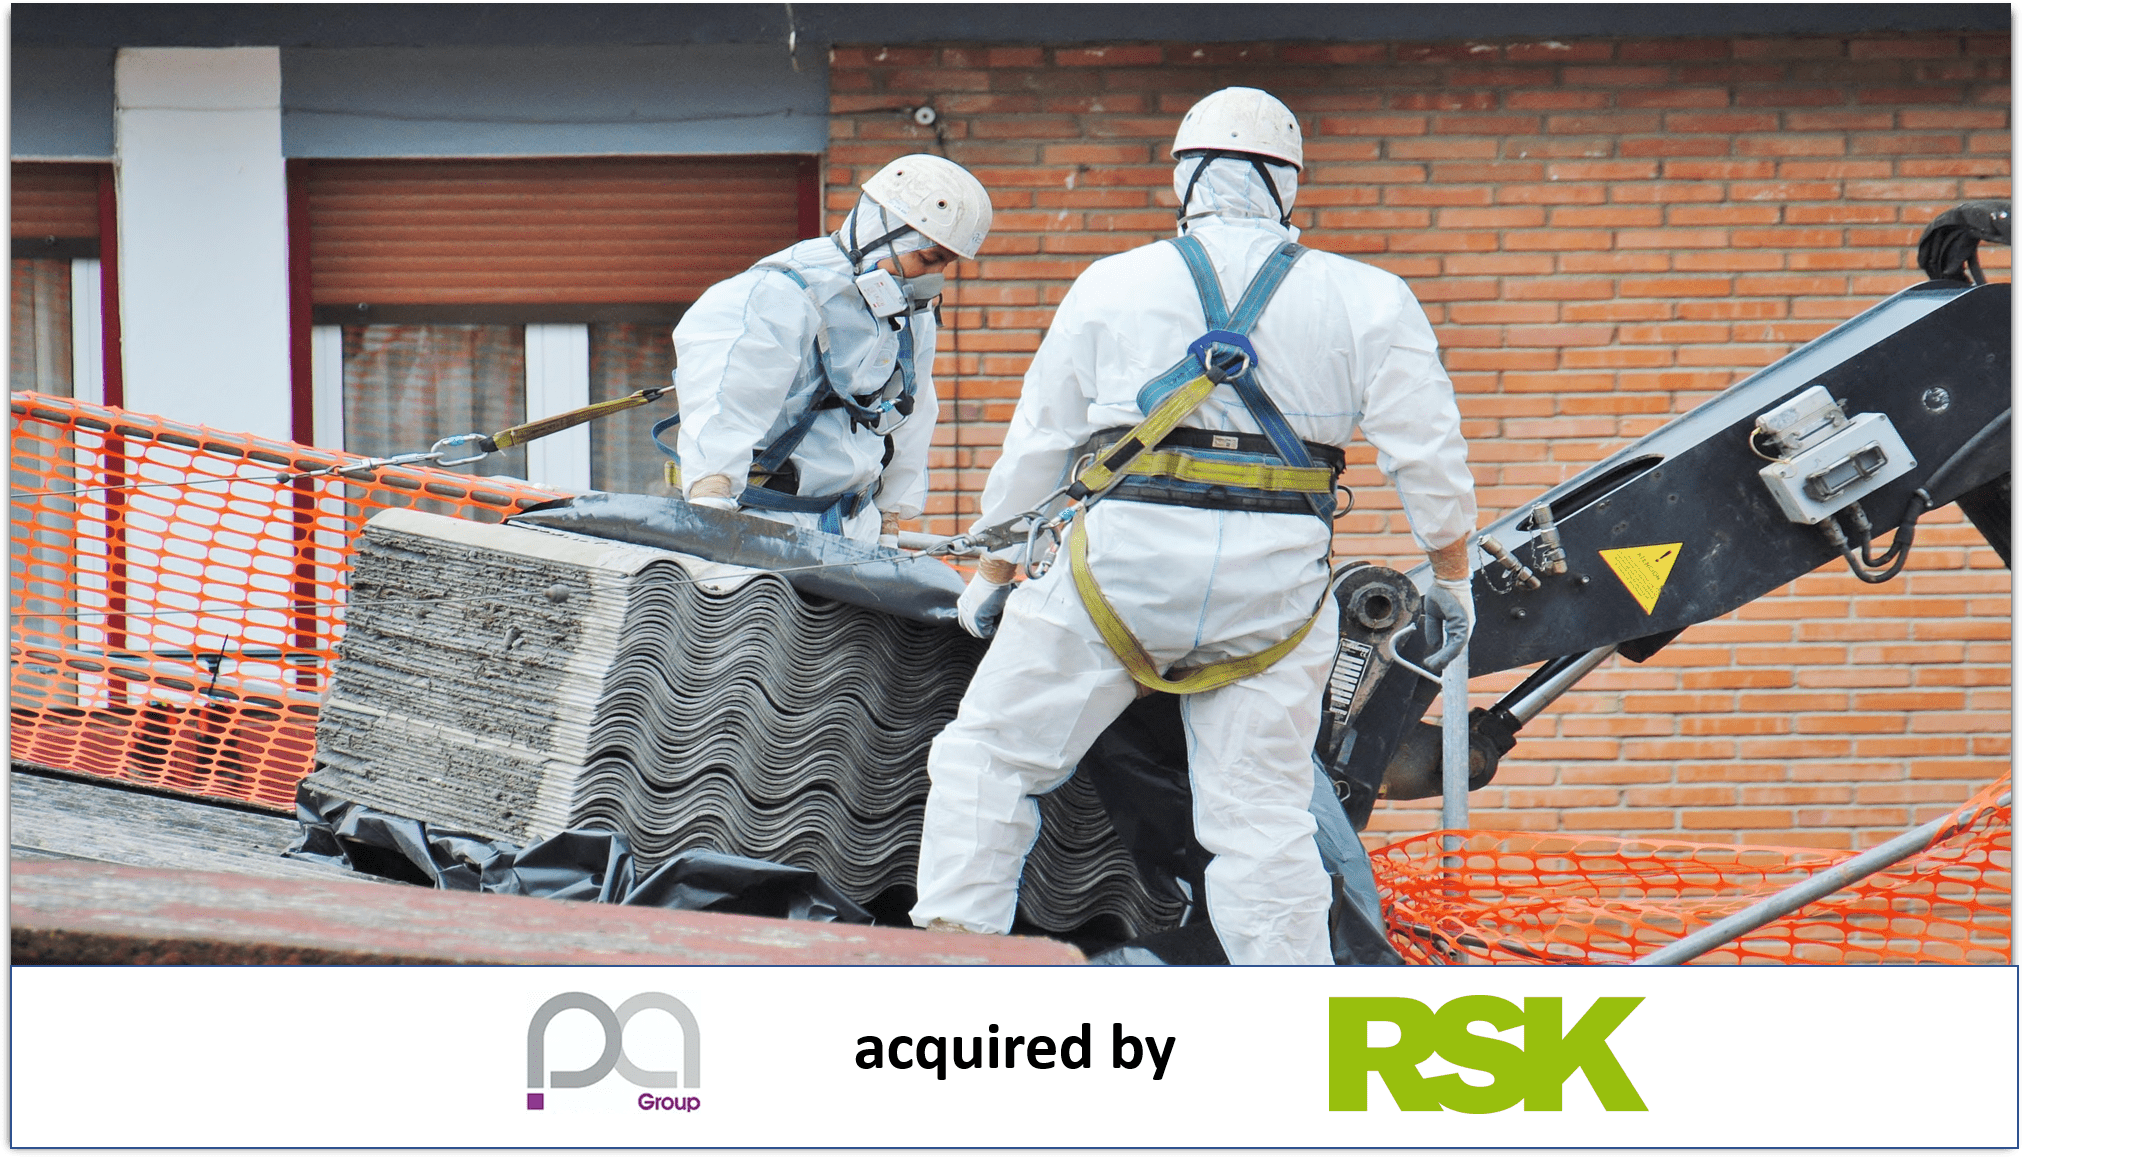 RSK acquires PA Group